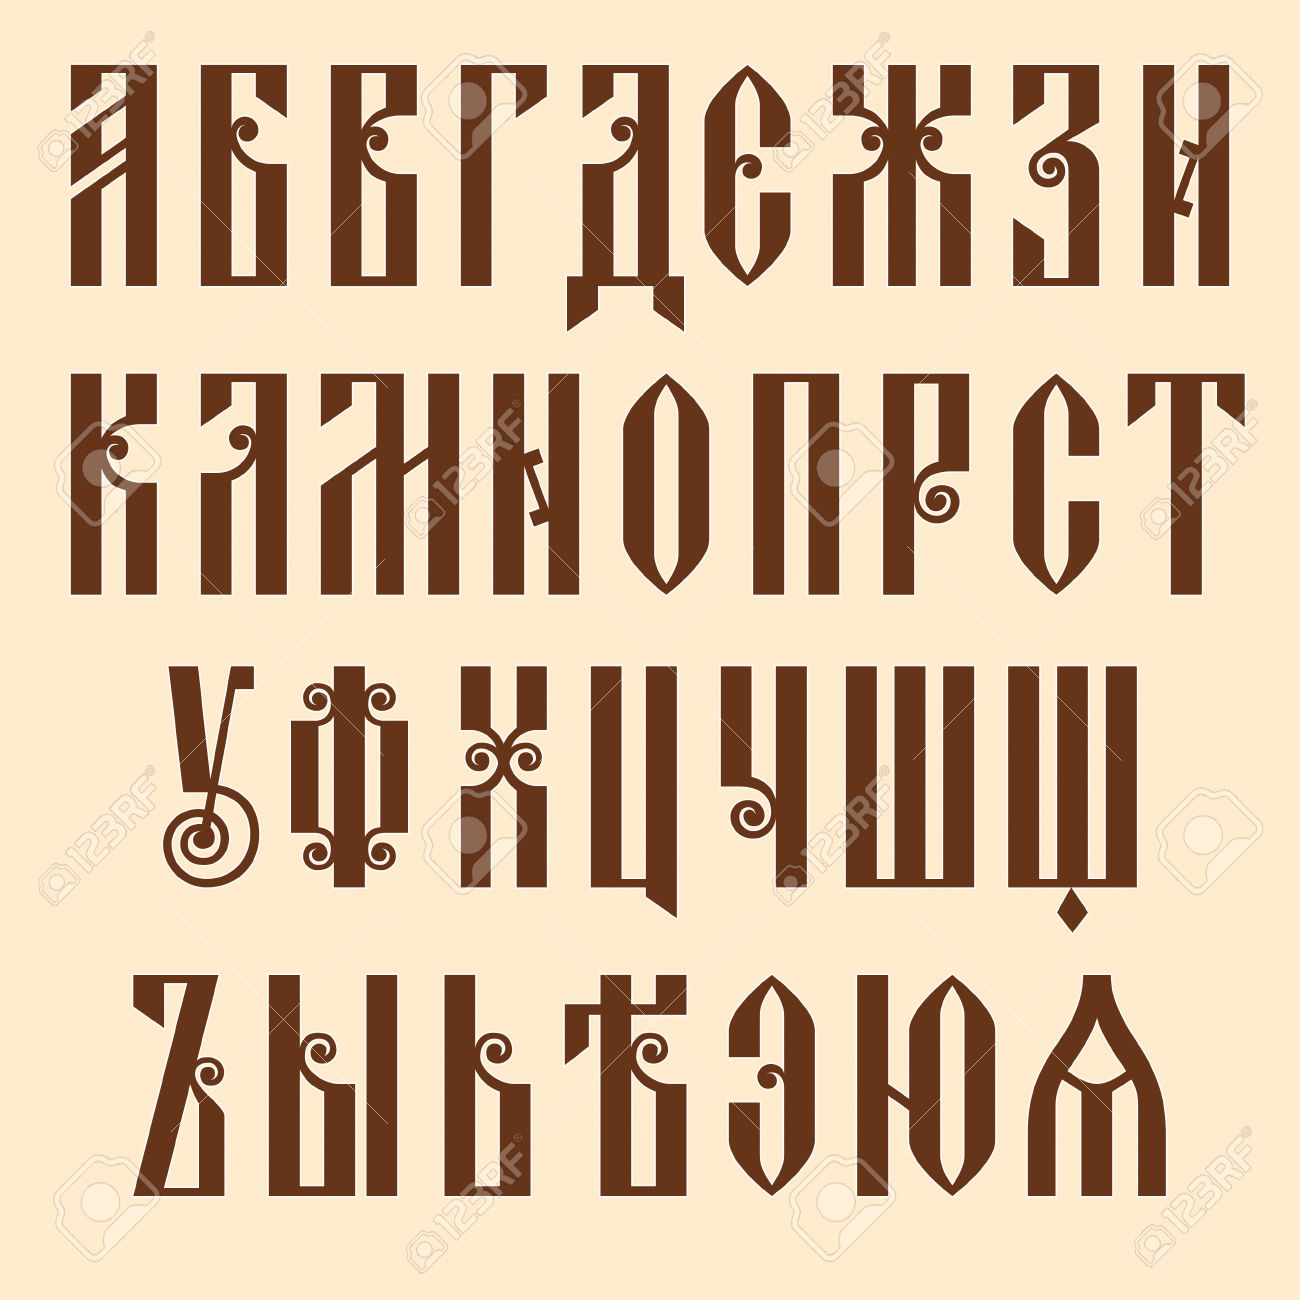 Resources for Fonts and Keyboards - Russian Studies - Research